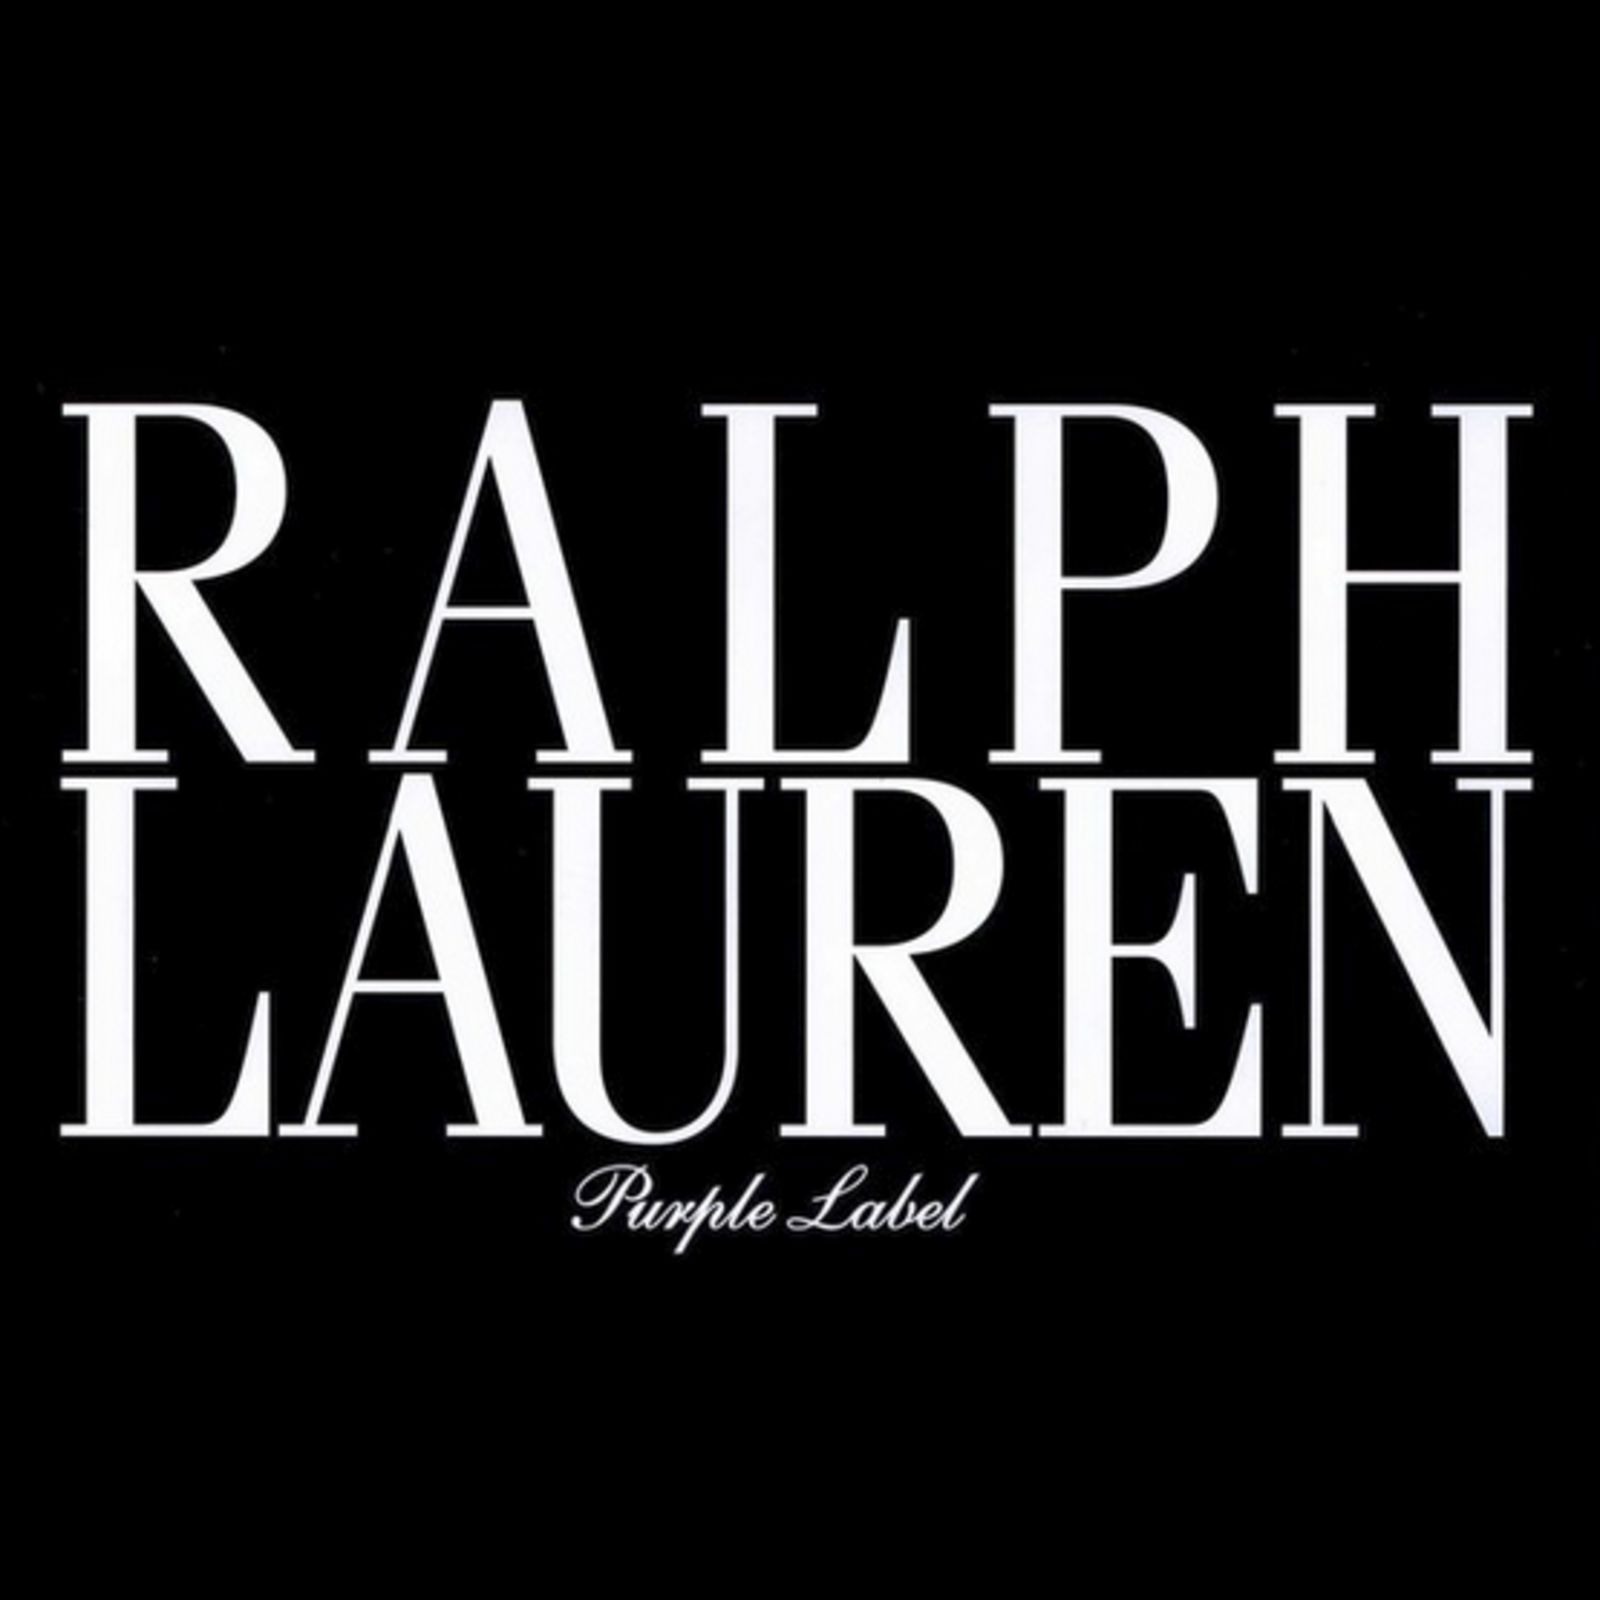 RALPH LAUREN PURPLE LABEL (Bild 1)